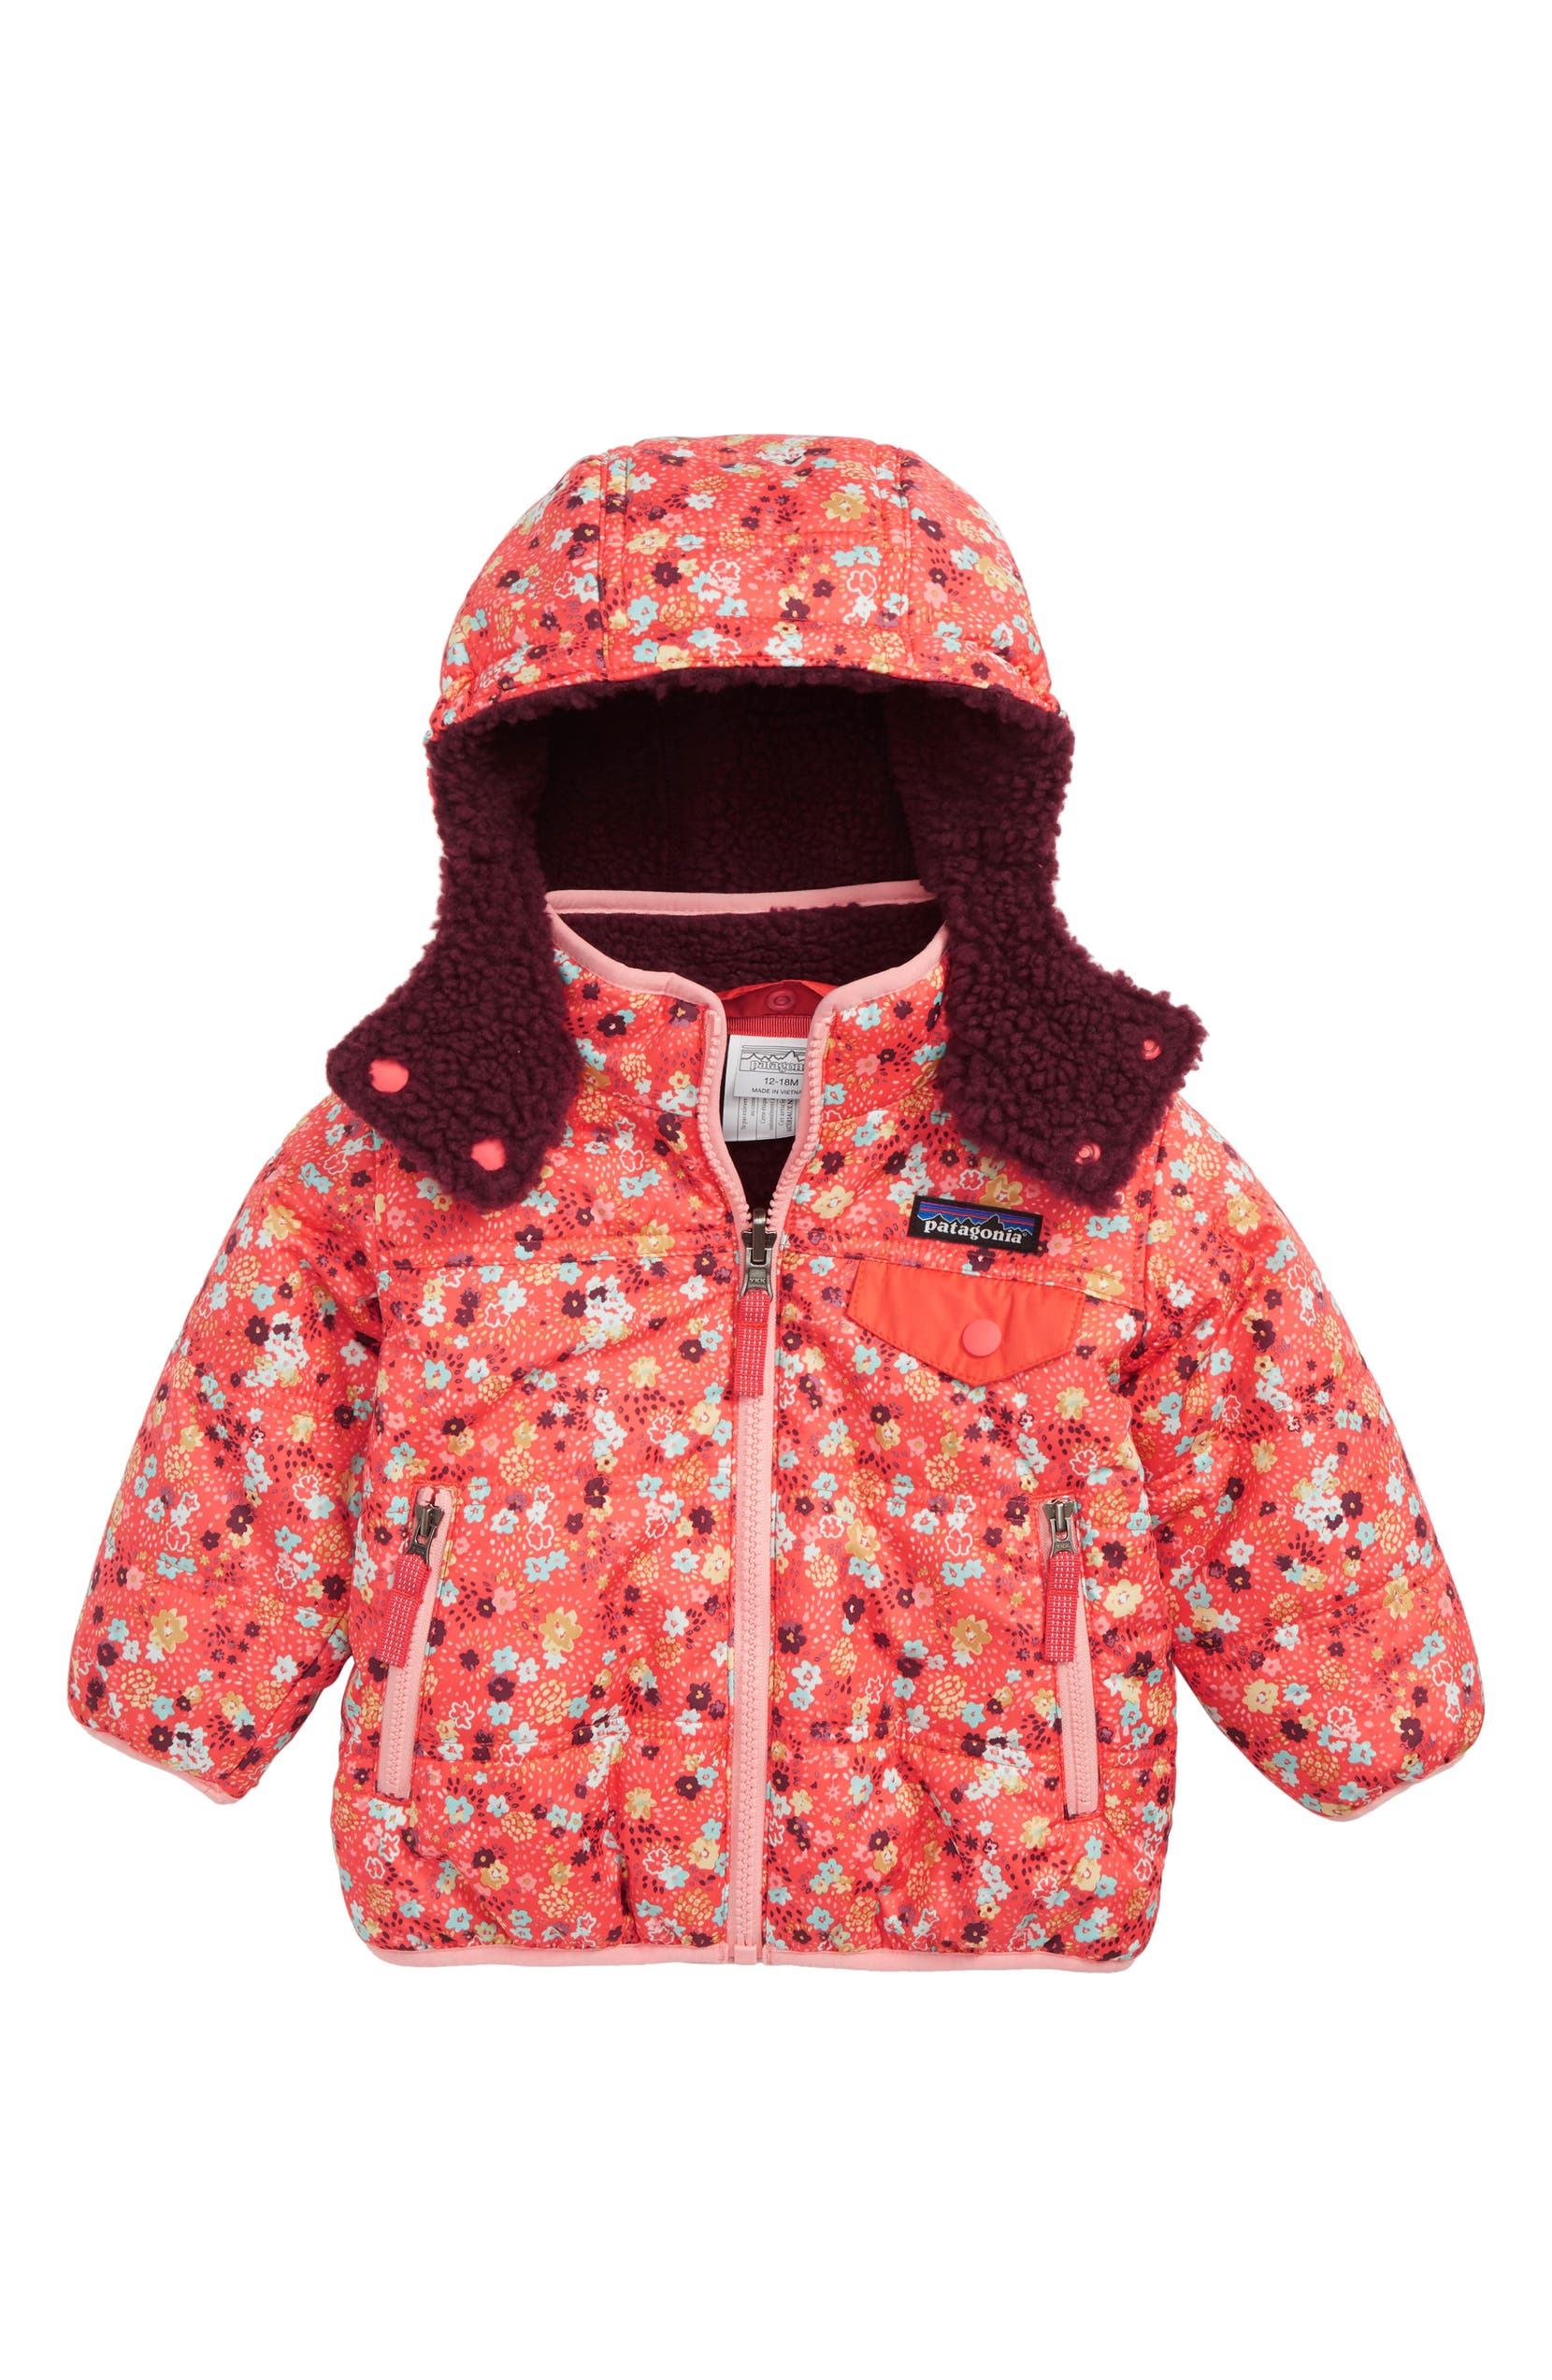 277145e7f1c0 Patagonia Tribbles Reversible Water Resistant Snow Jacket (Baby ...